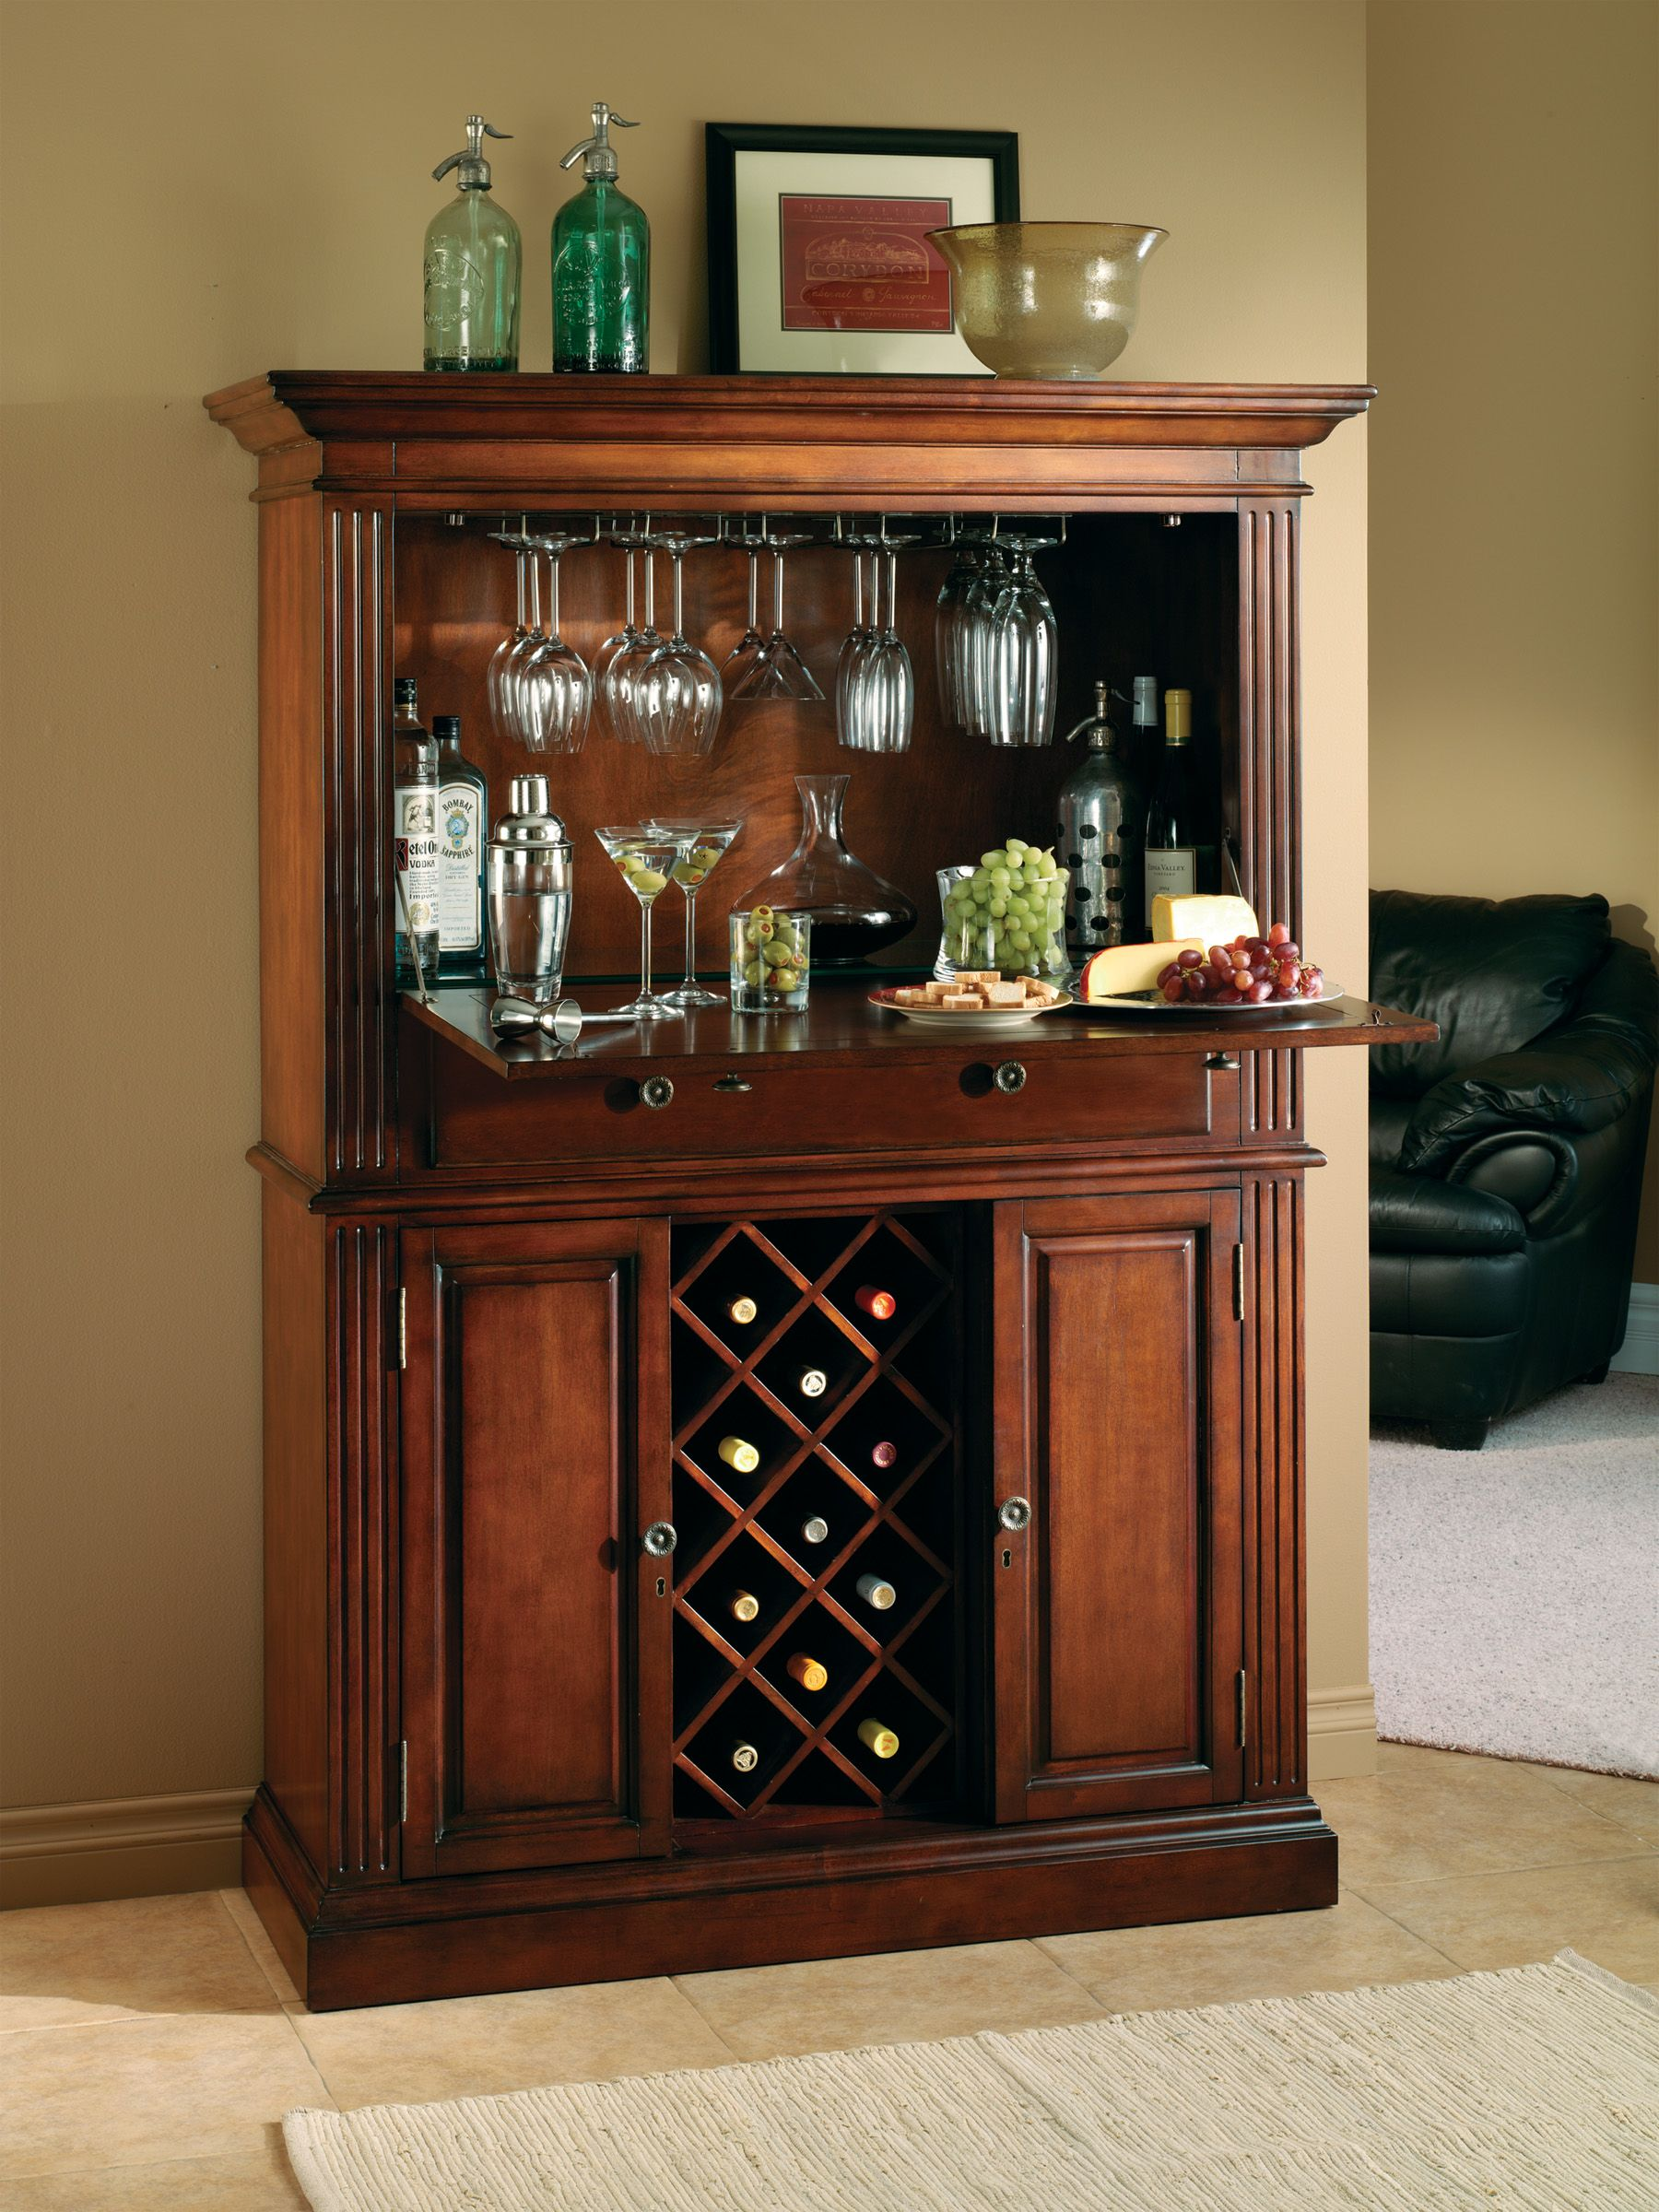 bars miller barossa howard wine usa valley home bar cabinet products